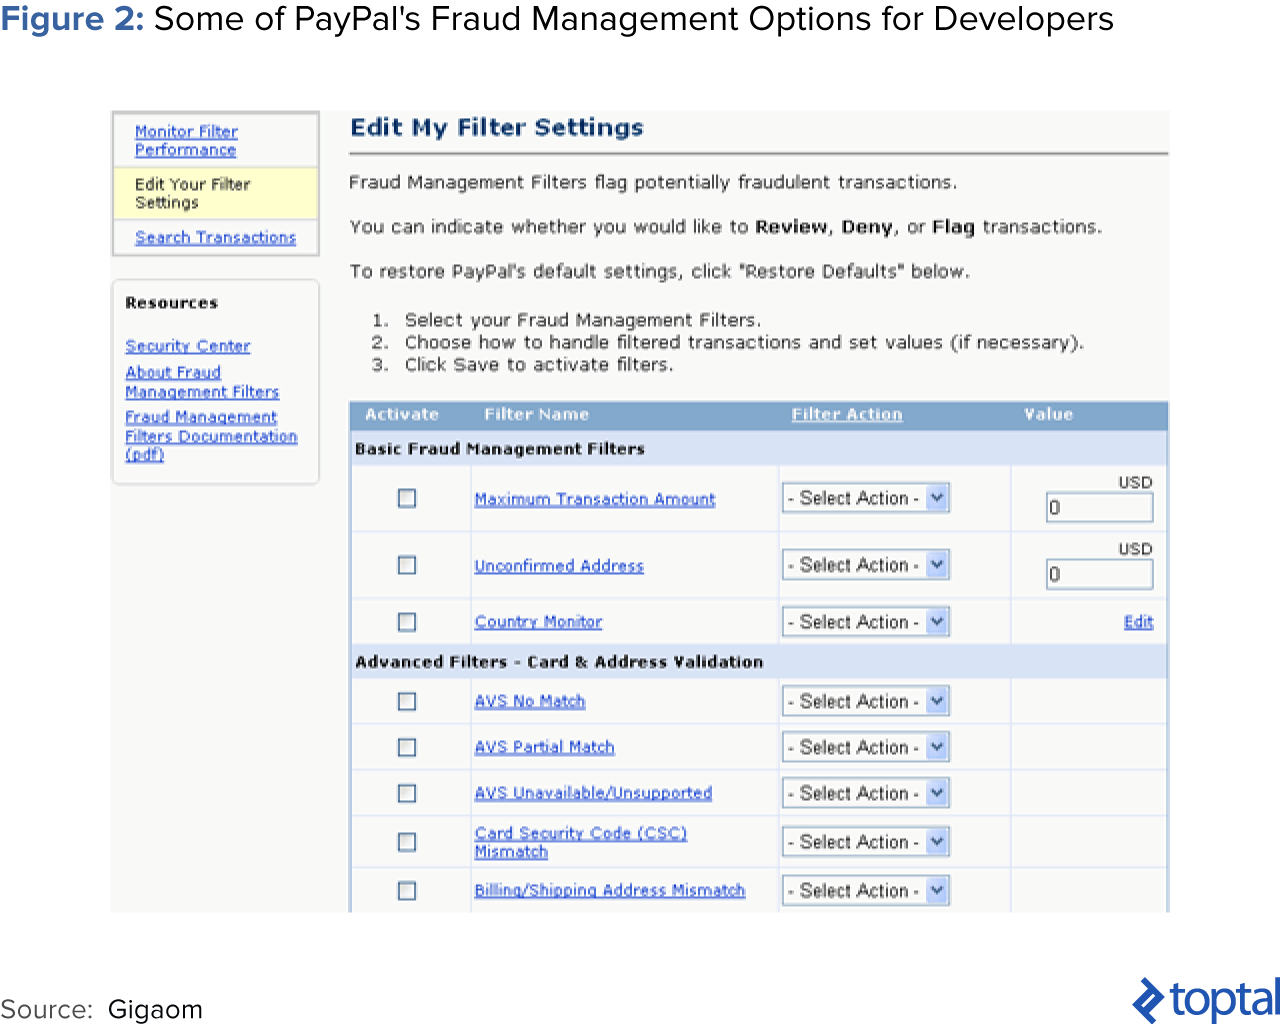 Figure 2: Some of PayPal's Fraud Management Options for Developers